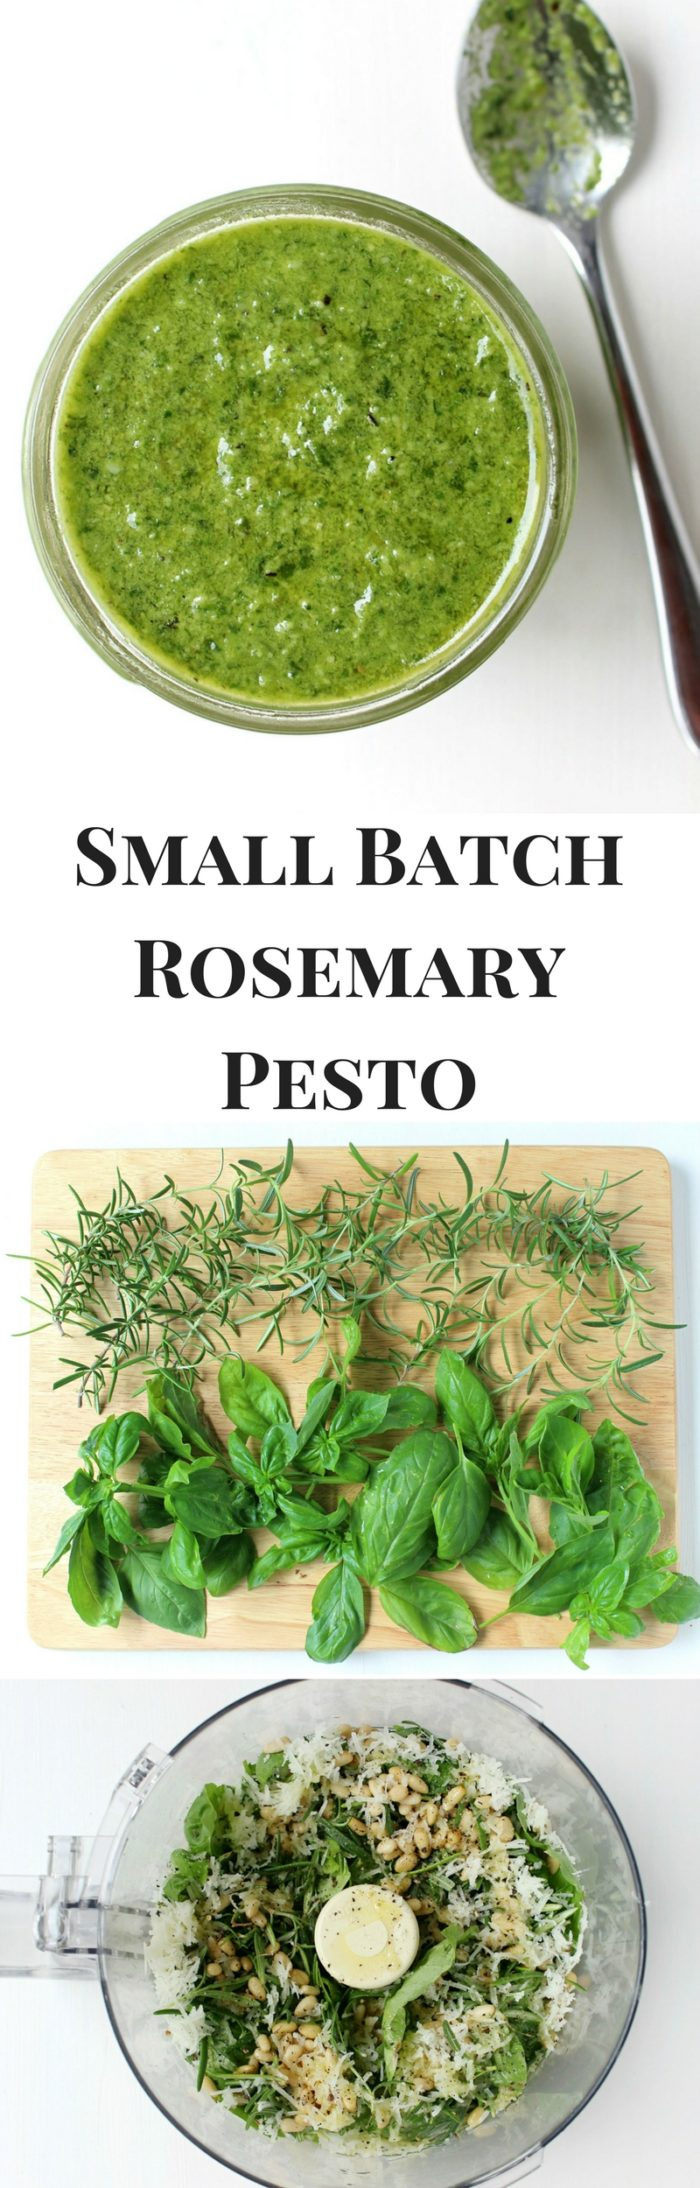 Small Batch Rosemary Pesto with Creamy Aged Manchego